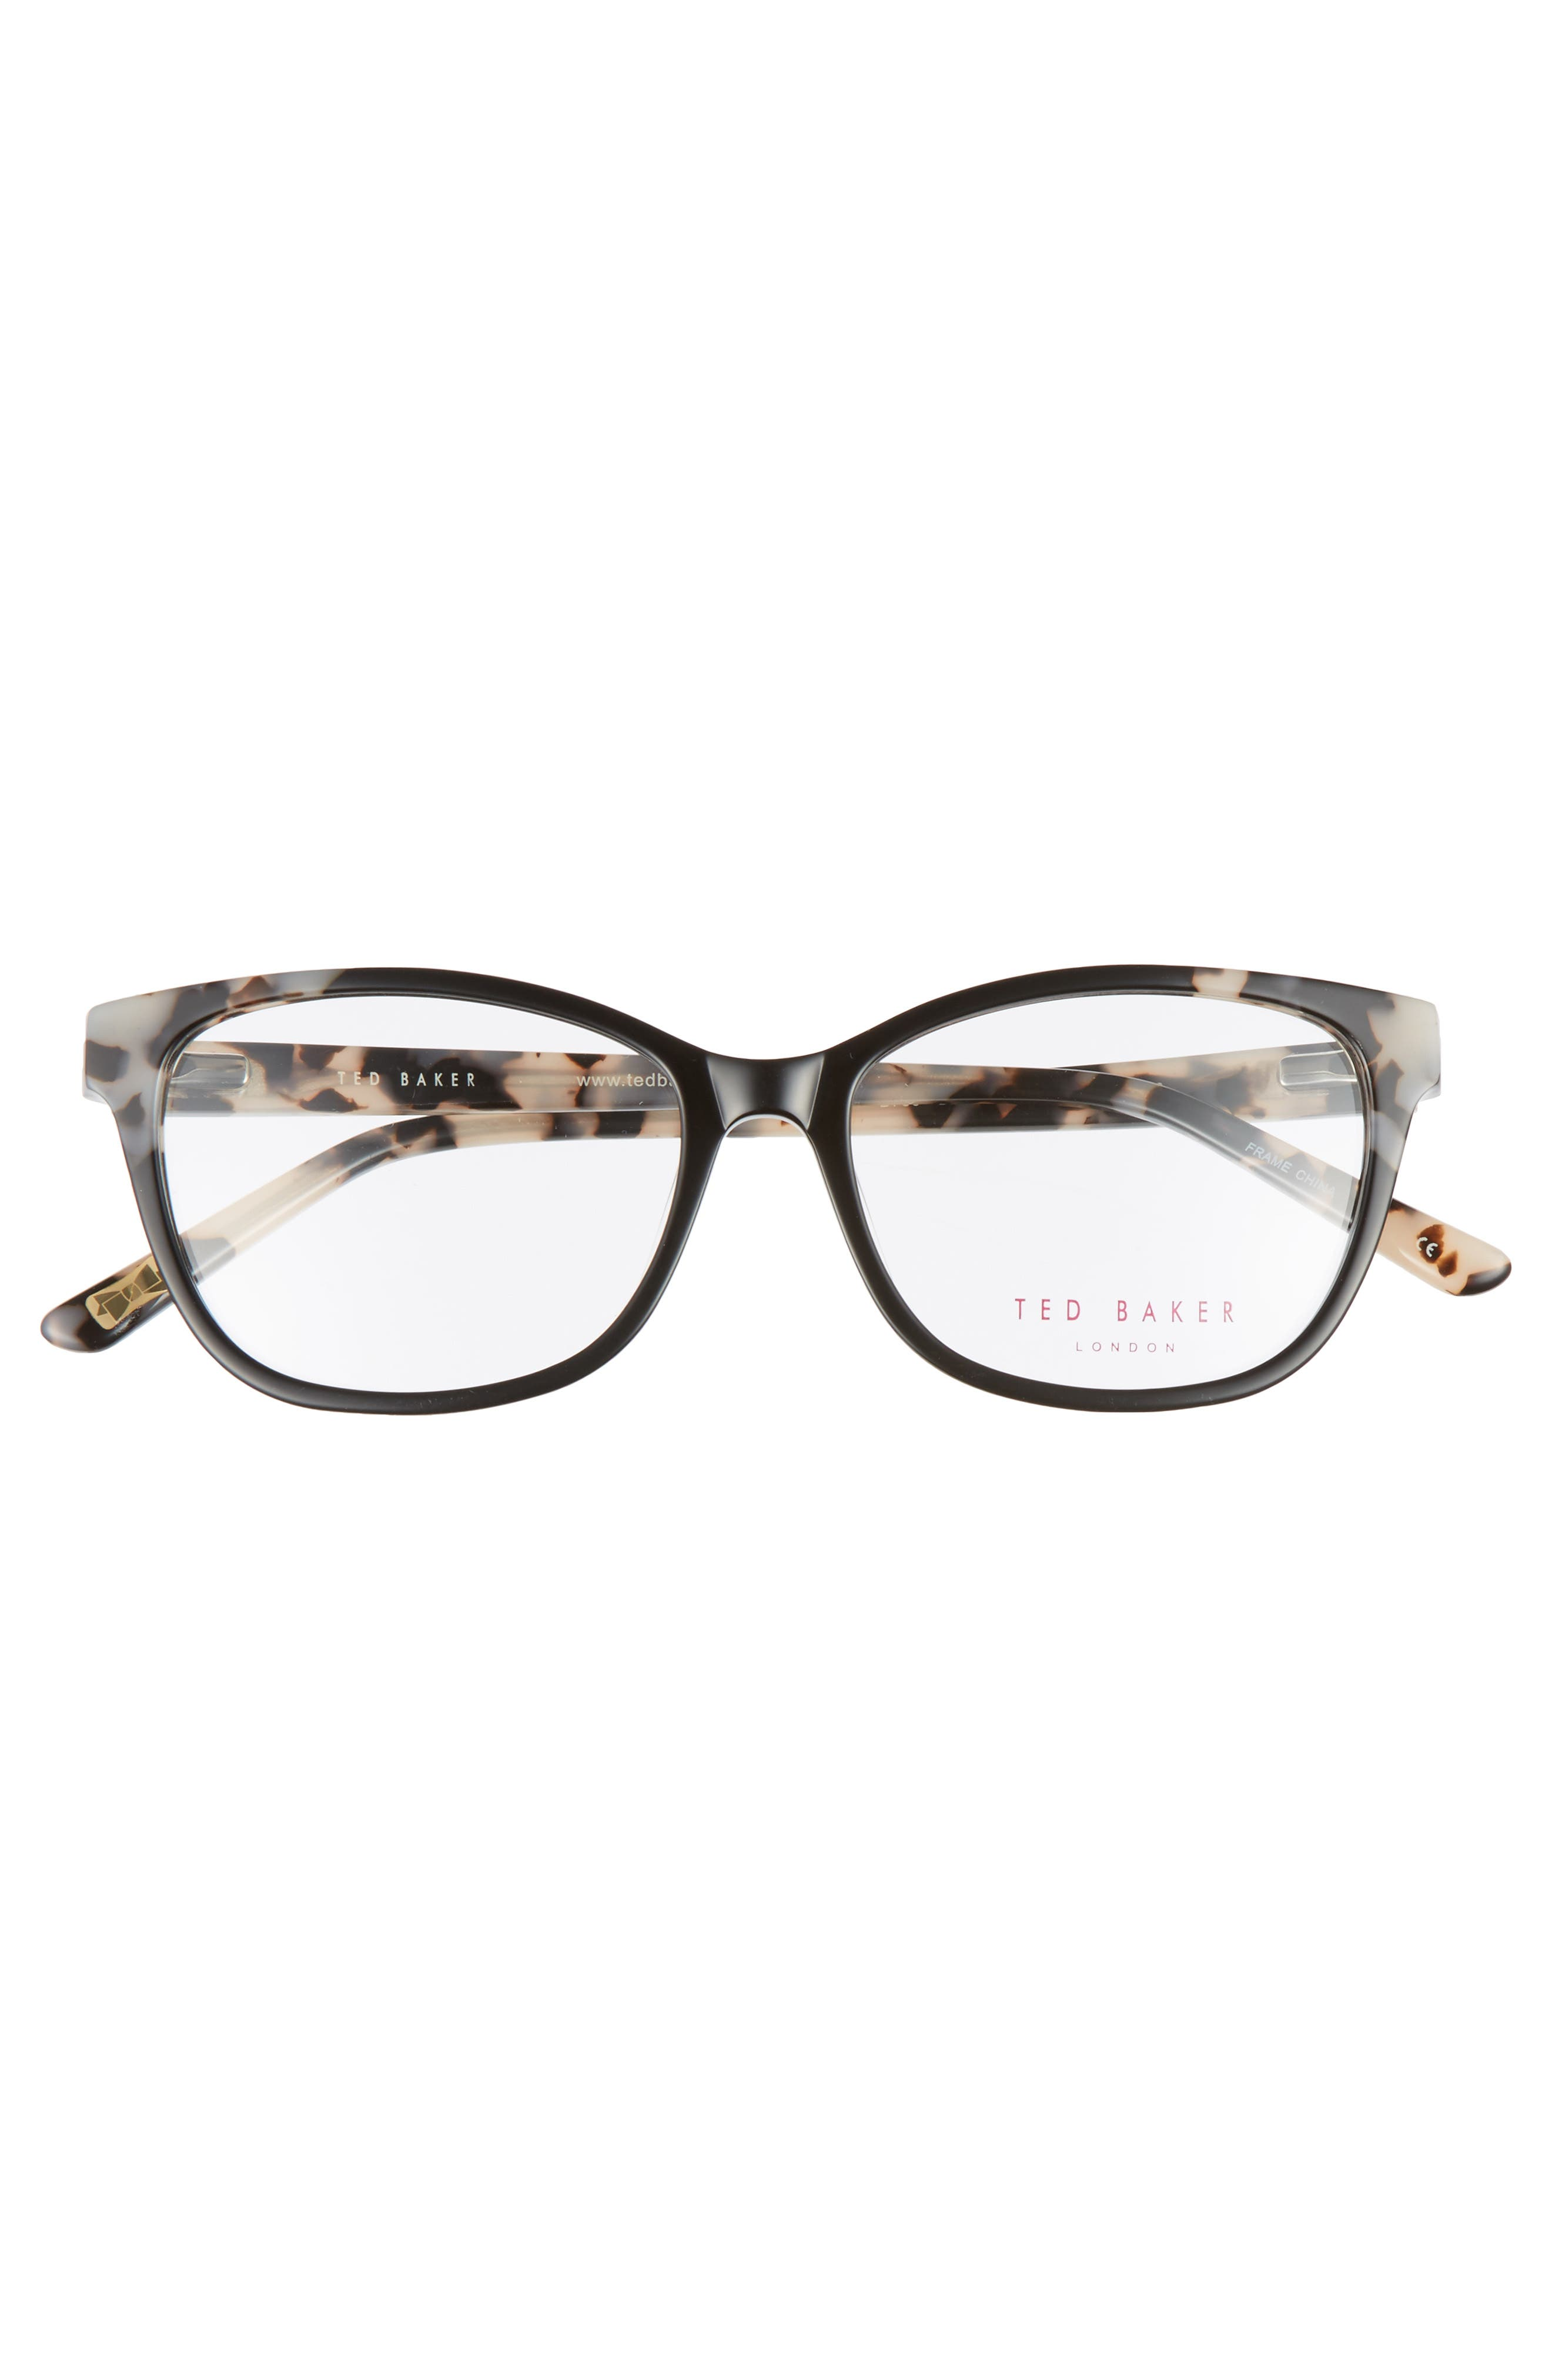 52mm Square Optical Glasses,                             Alternate thumbnail 3, color,